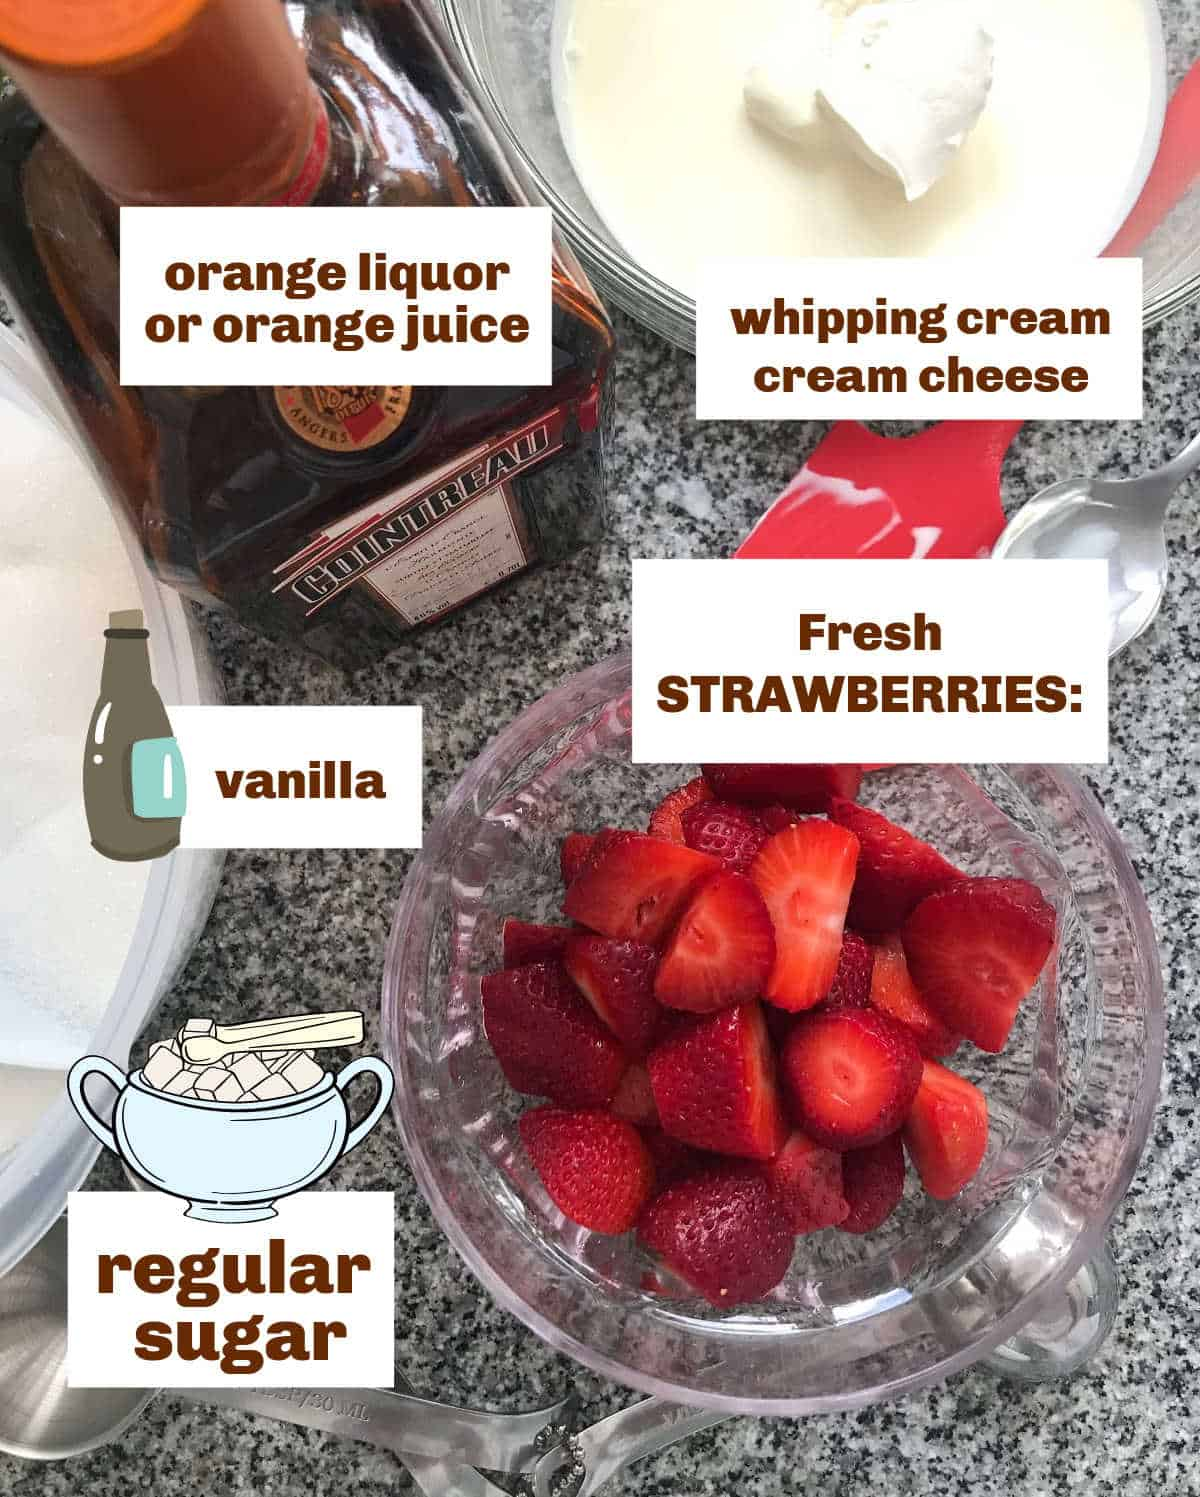 Grey marble surface with bottle of liquor, bowl with strawberries, cream; text and graphics